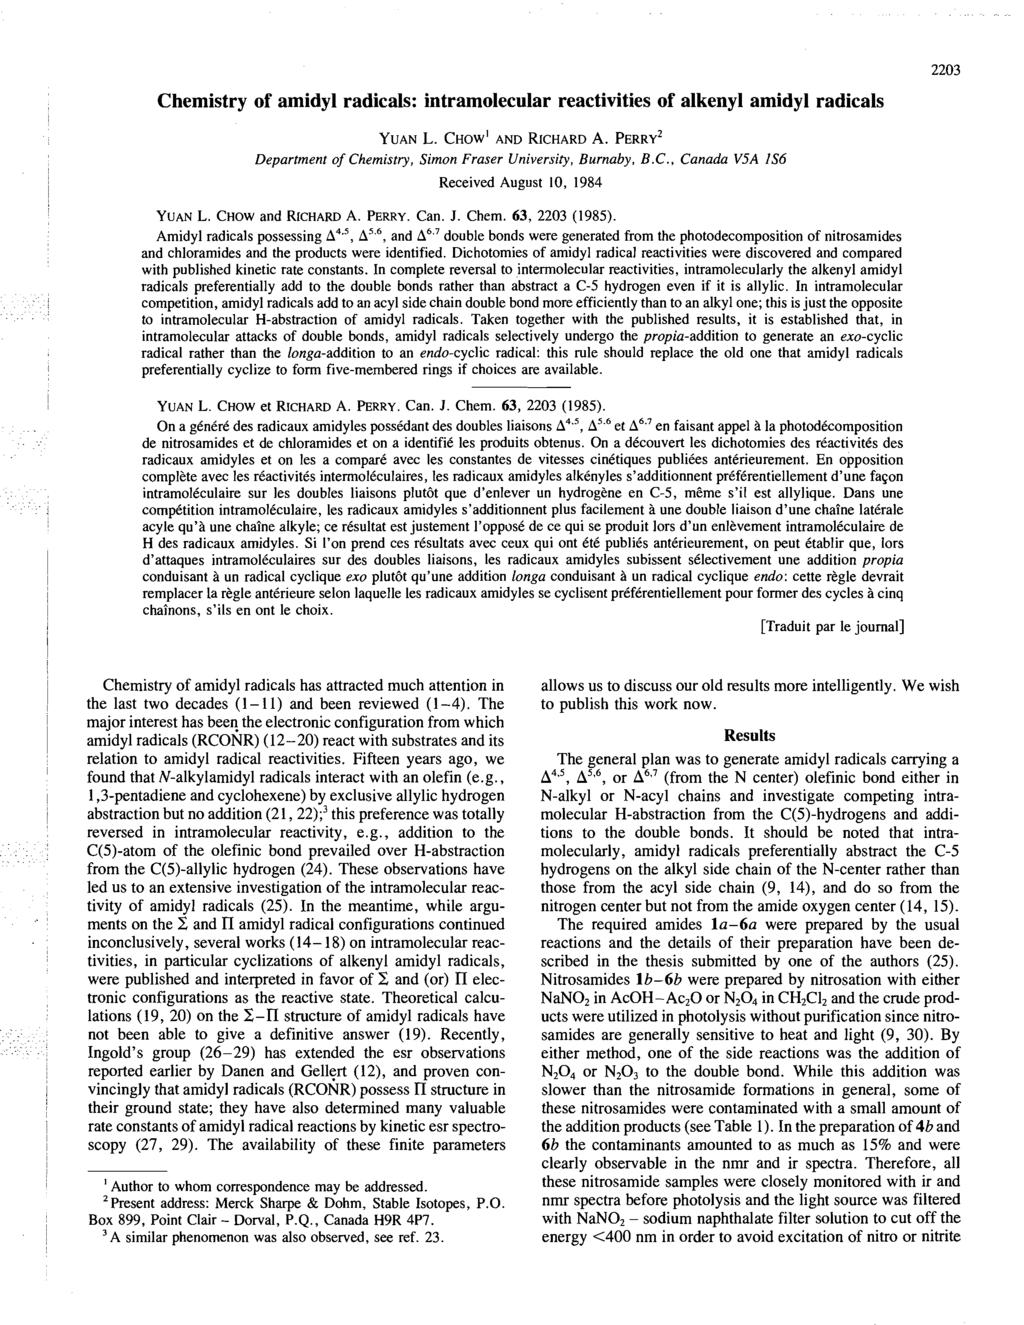 Chemistry of amidyl radicals: intramolecular reactivities of alkenyl amidyl radicals YUAN L. CHOW' AND RICHARD A. PERRY' Department of Chemistry, Simon Fraser University, Burnaby, B.C., Canada V5A IS6 Received August 10, 1984 YUAN L.